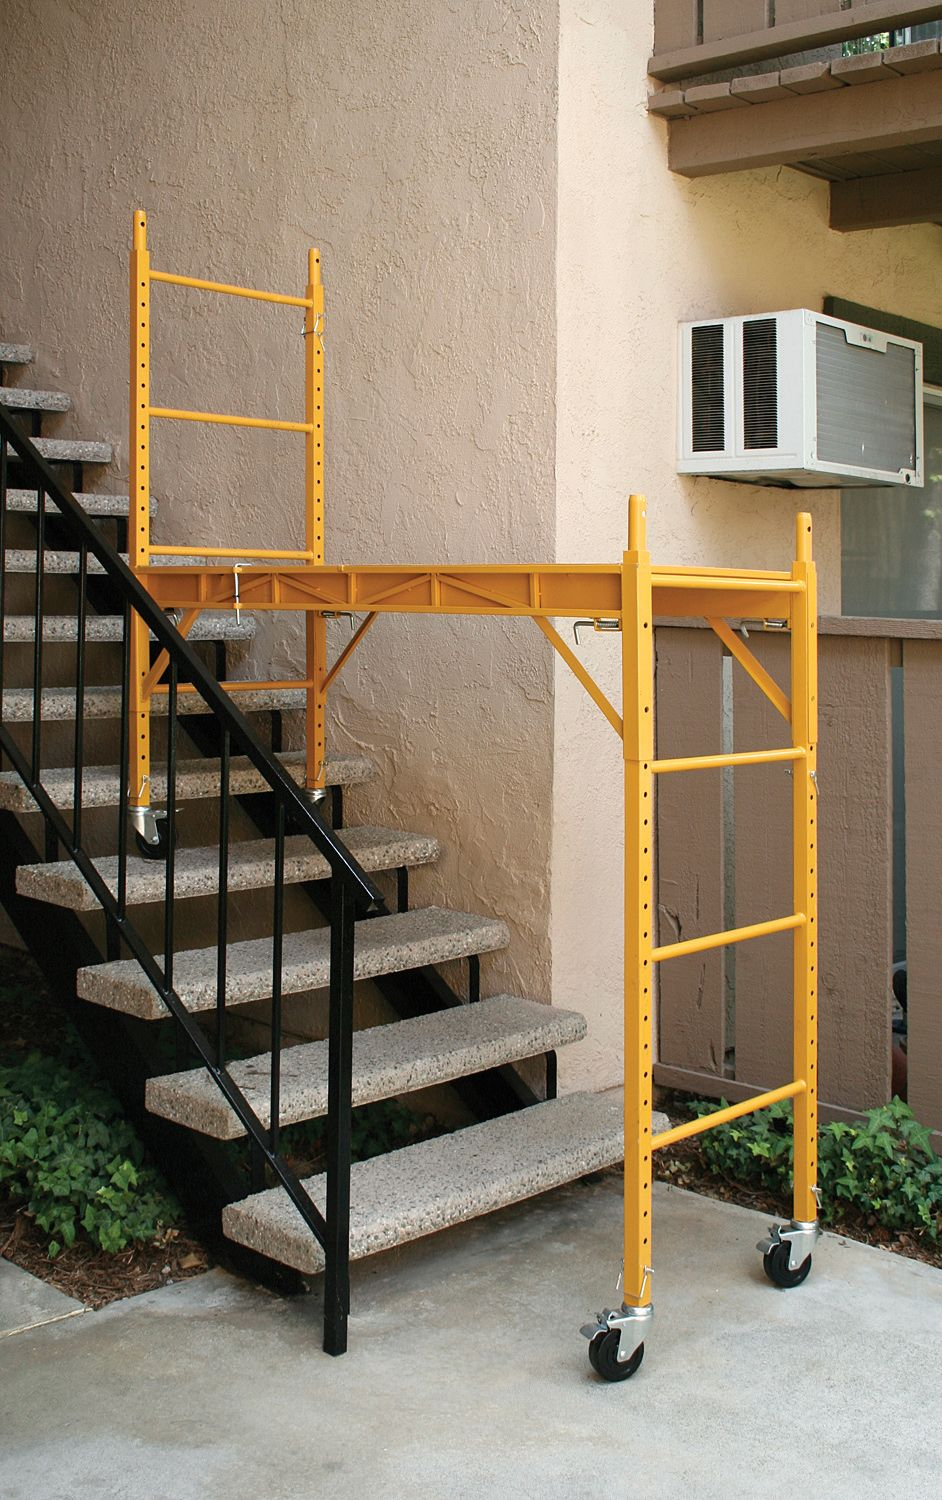 Reach For The Sky The 6 Stackable Baker Style Utility Scaffold Easily Adjusts So You Always Have A Level Wor Andamios Portatiles Andamio Herramientas Caseras